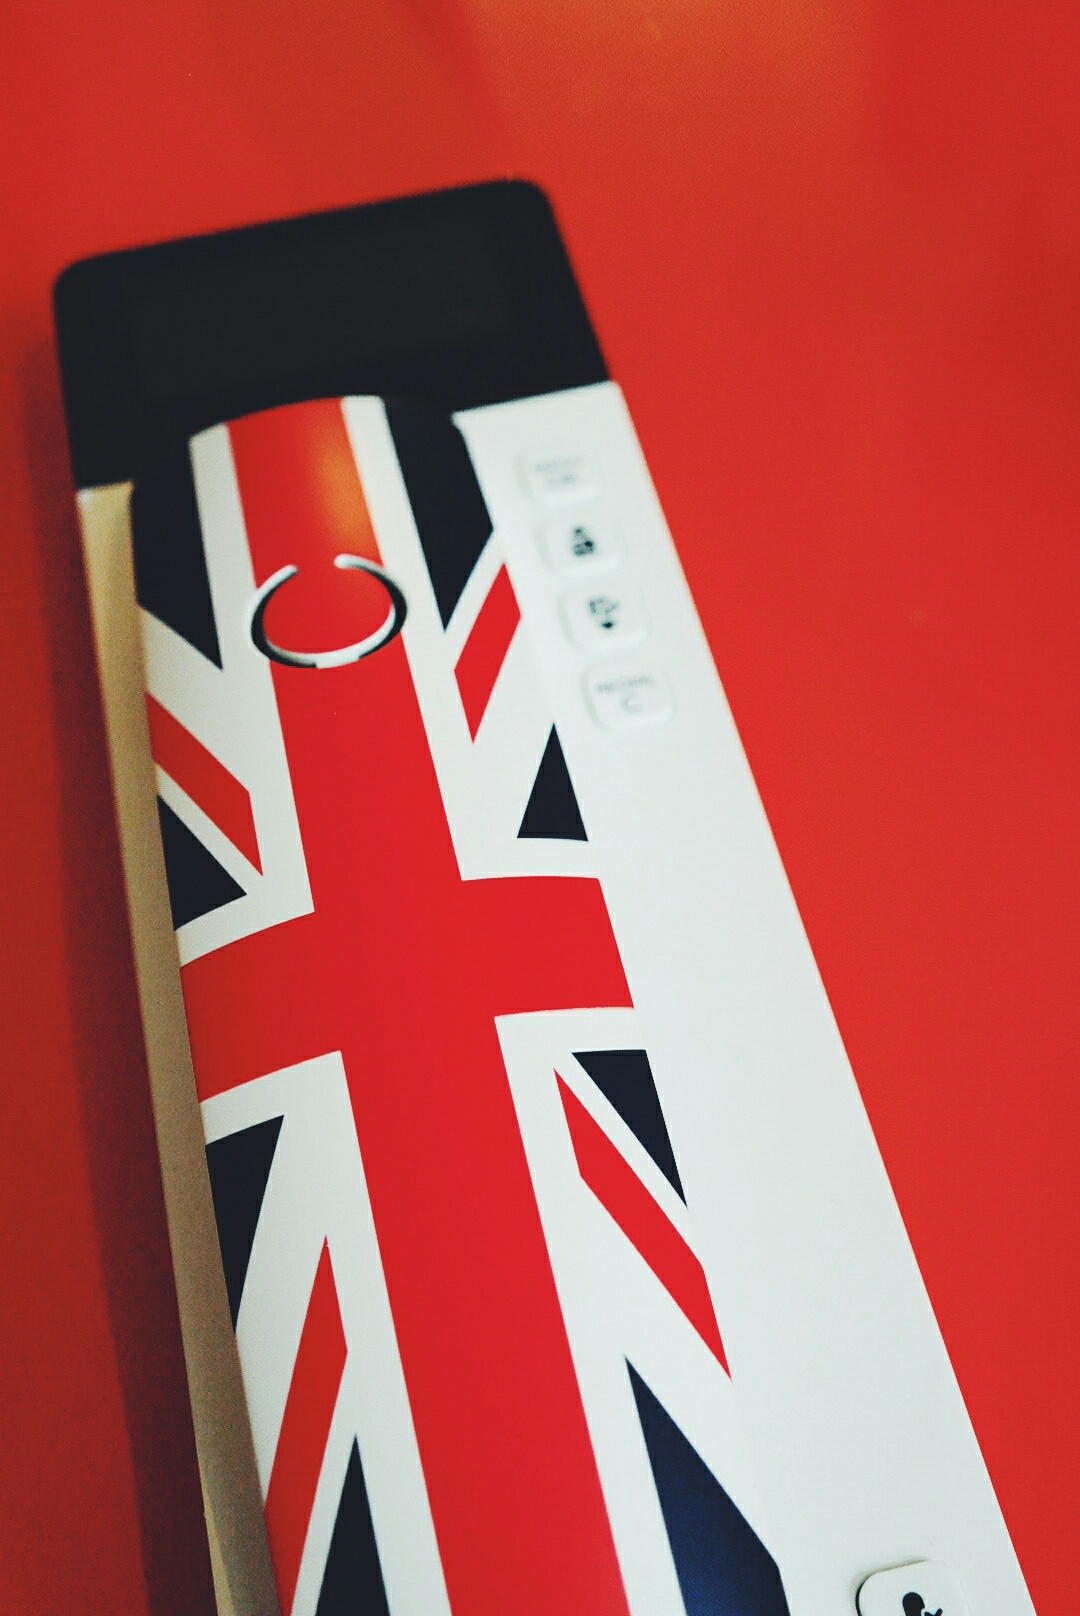 Téléphone fixe filaire design british Philips scala union jack phone Royaume Uni l appartement red édition paris photo by united states of paris blog